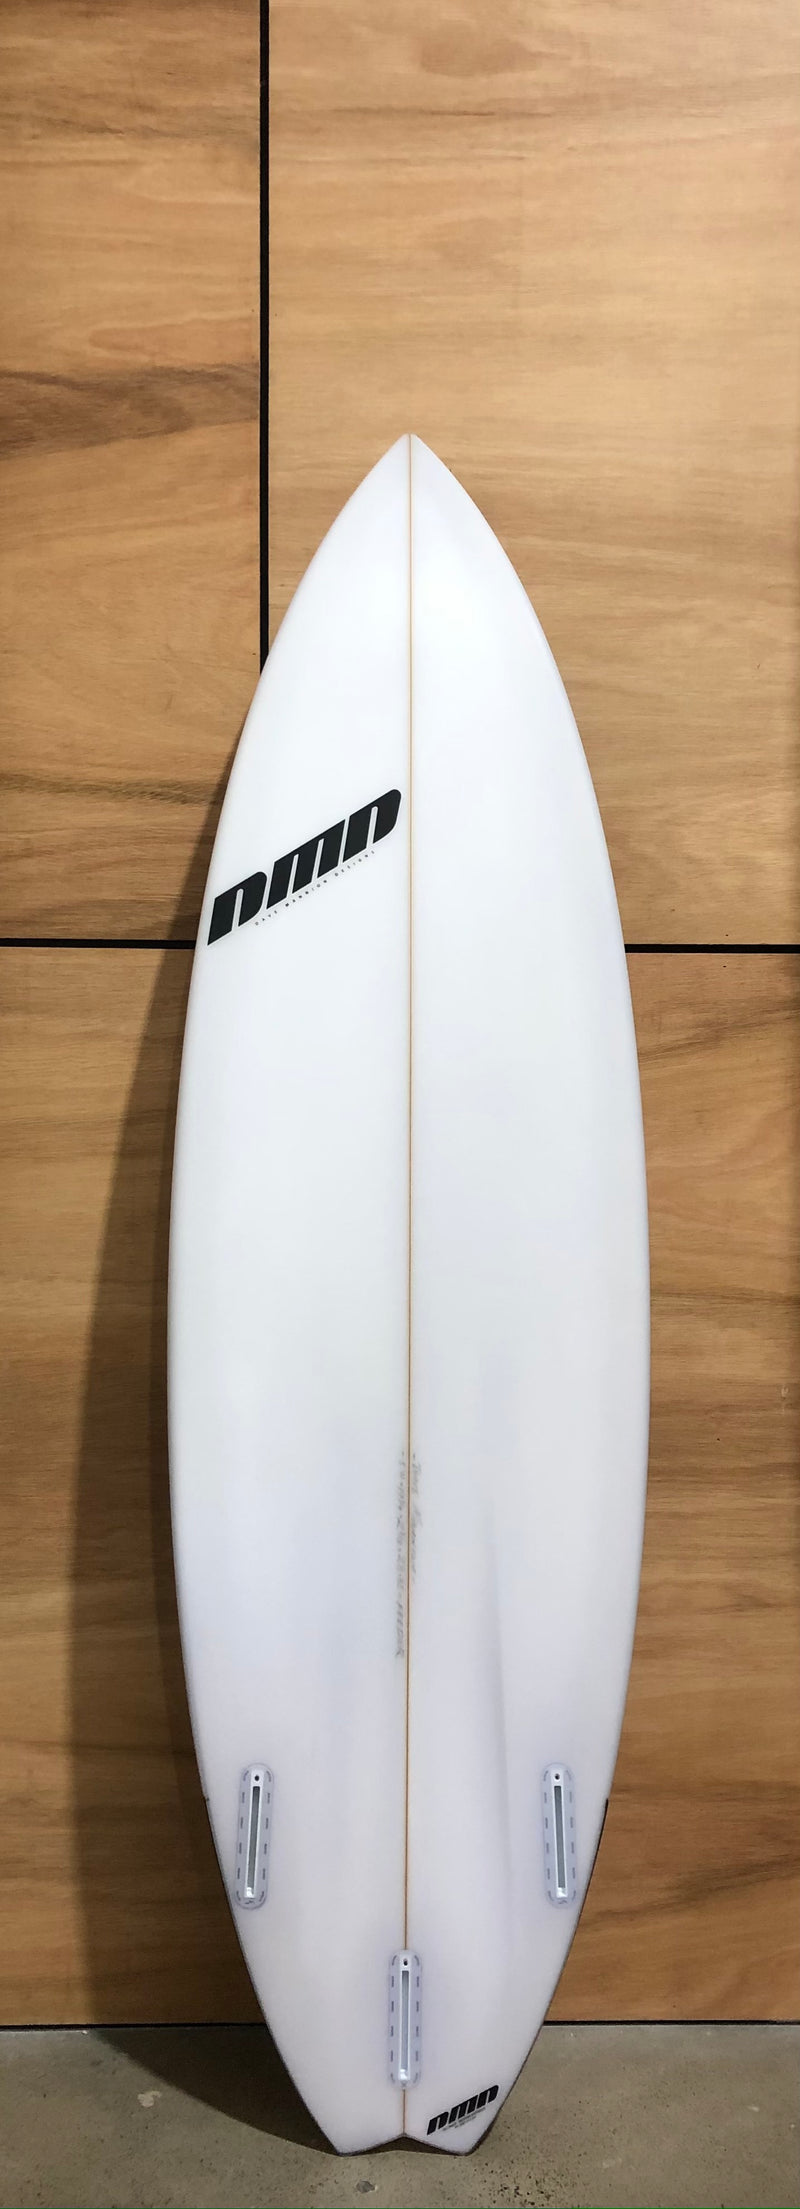 DMD D-Train FEEDER - Board Store DMDsurfboard